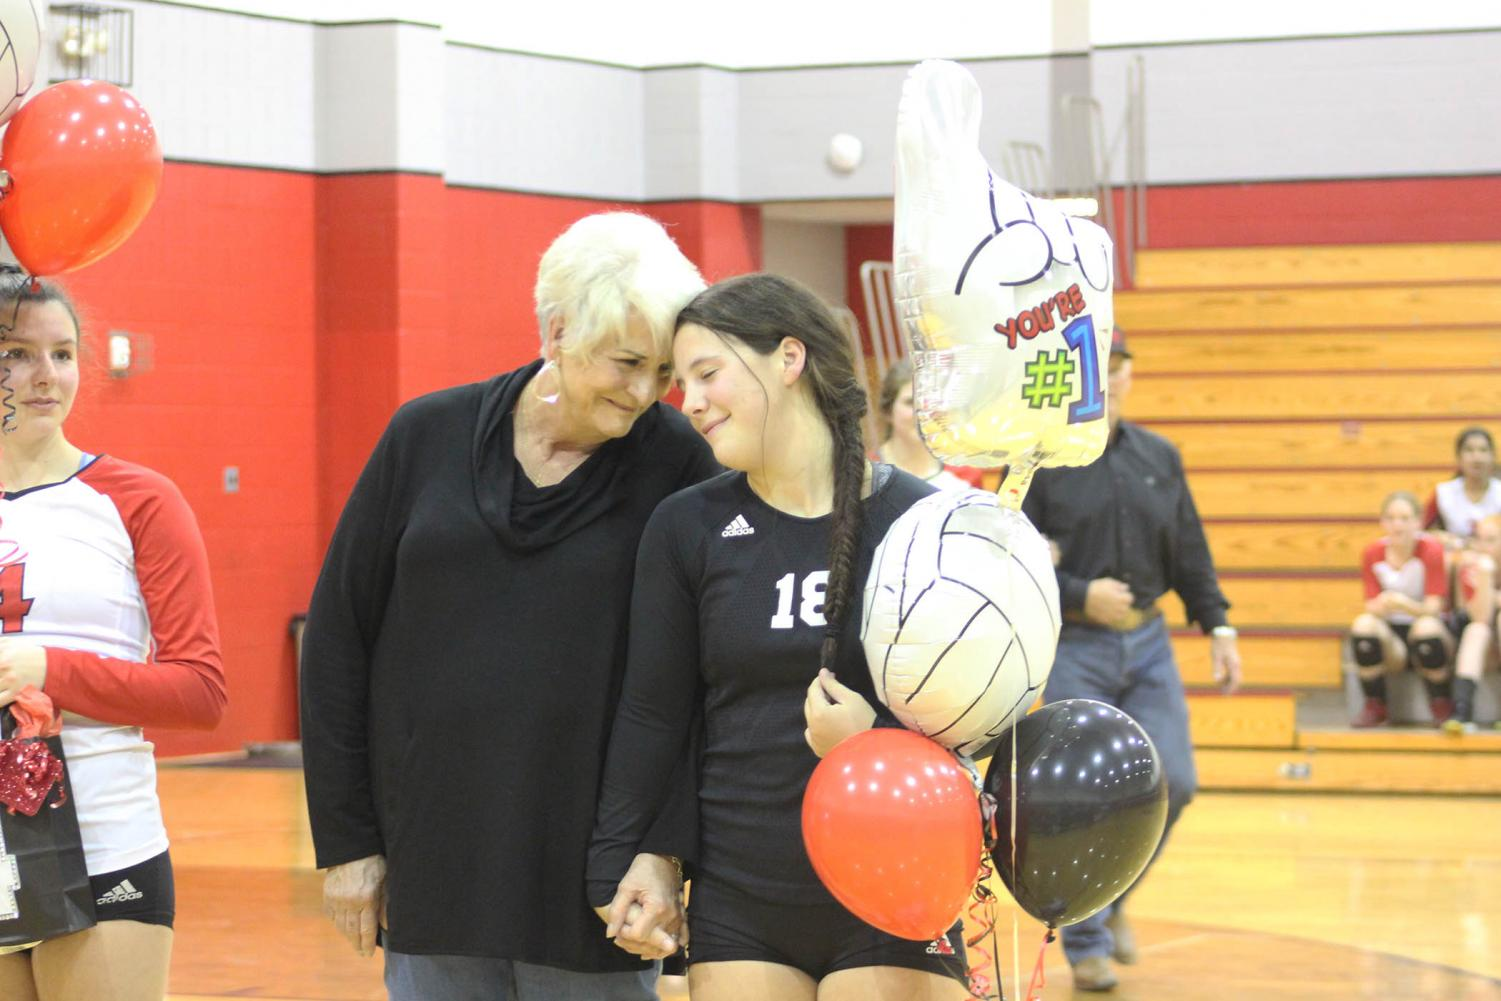 Senior Skyler Day and her grandmother Diana McGlasson share a moment on Senior Night for the volleyball team.